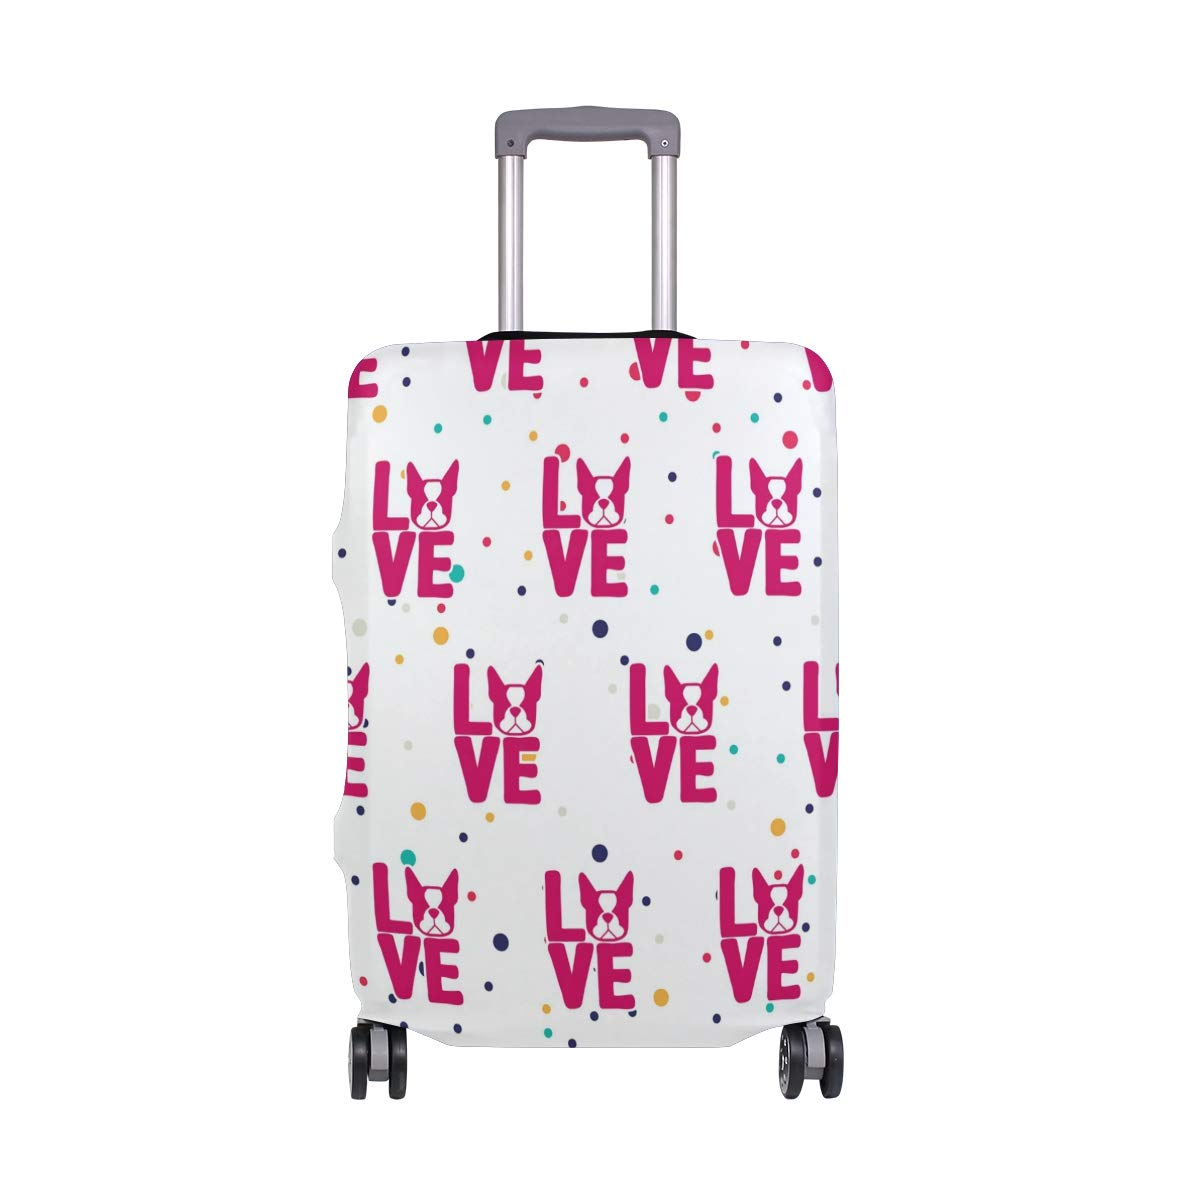 Pink Boston Terrier Love Travel Luggage Cover - Suitcase Protector HLive Spandex Dust Proof Covers with Zipper, Fits 18-32 inch